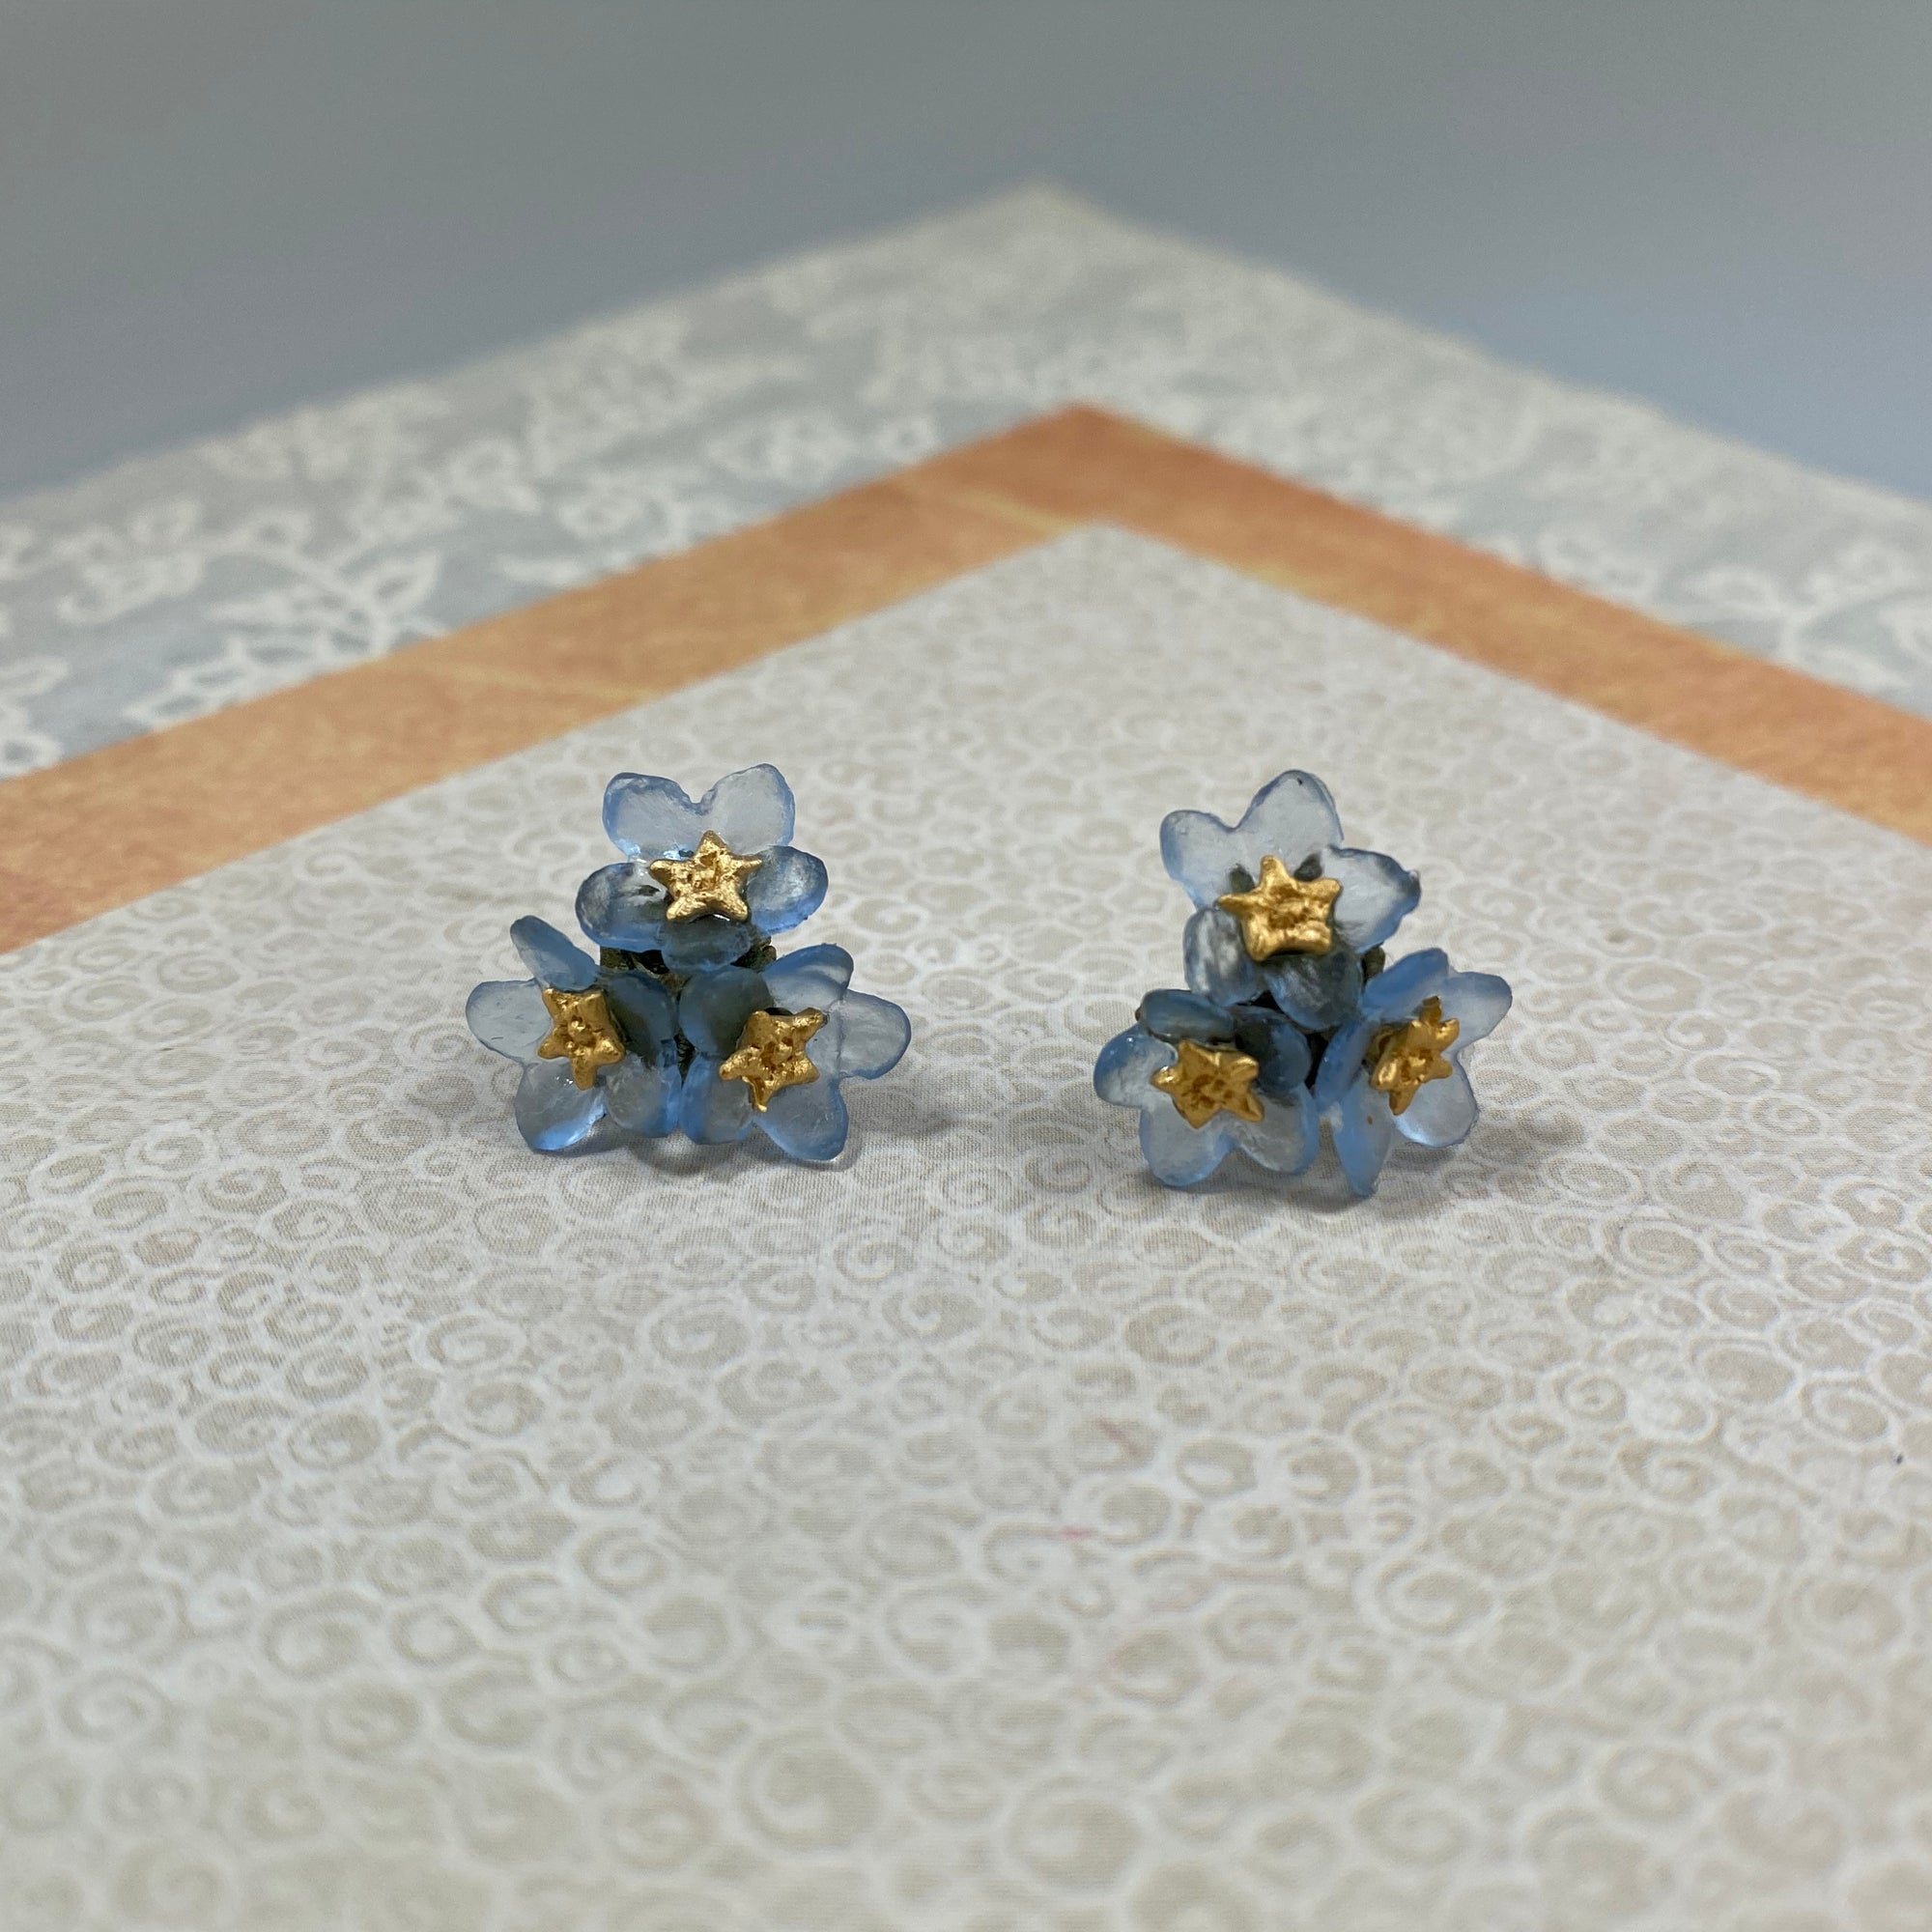 Forget Me Not Triple Flower Post Earrings - Heart of the Home PA